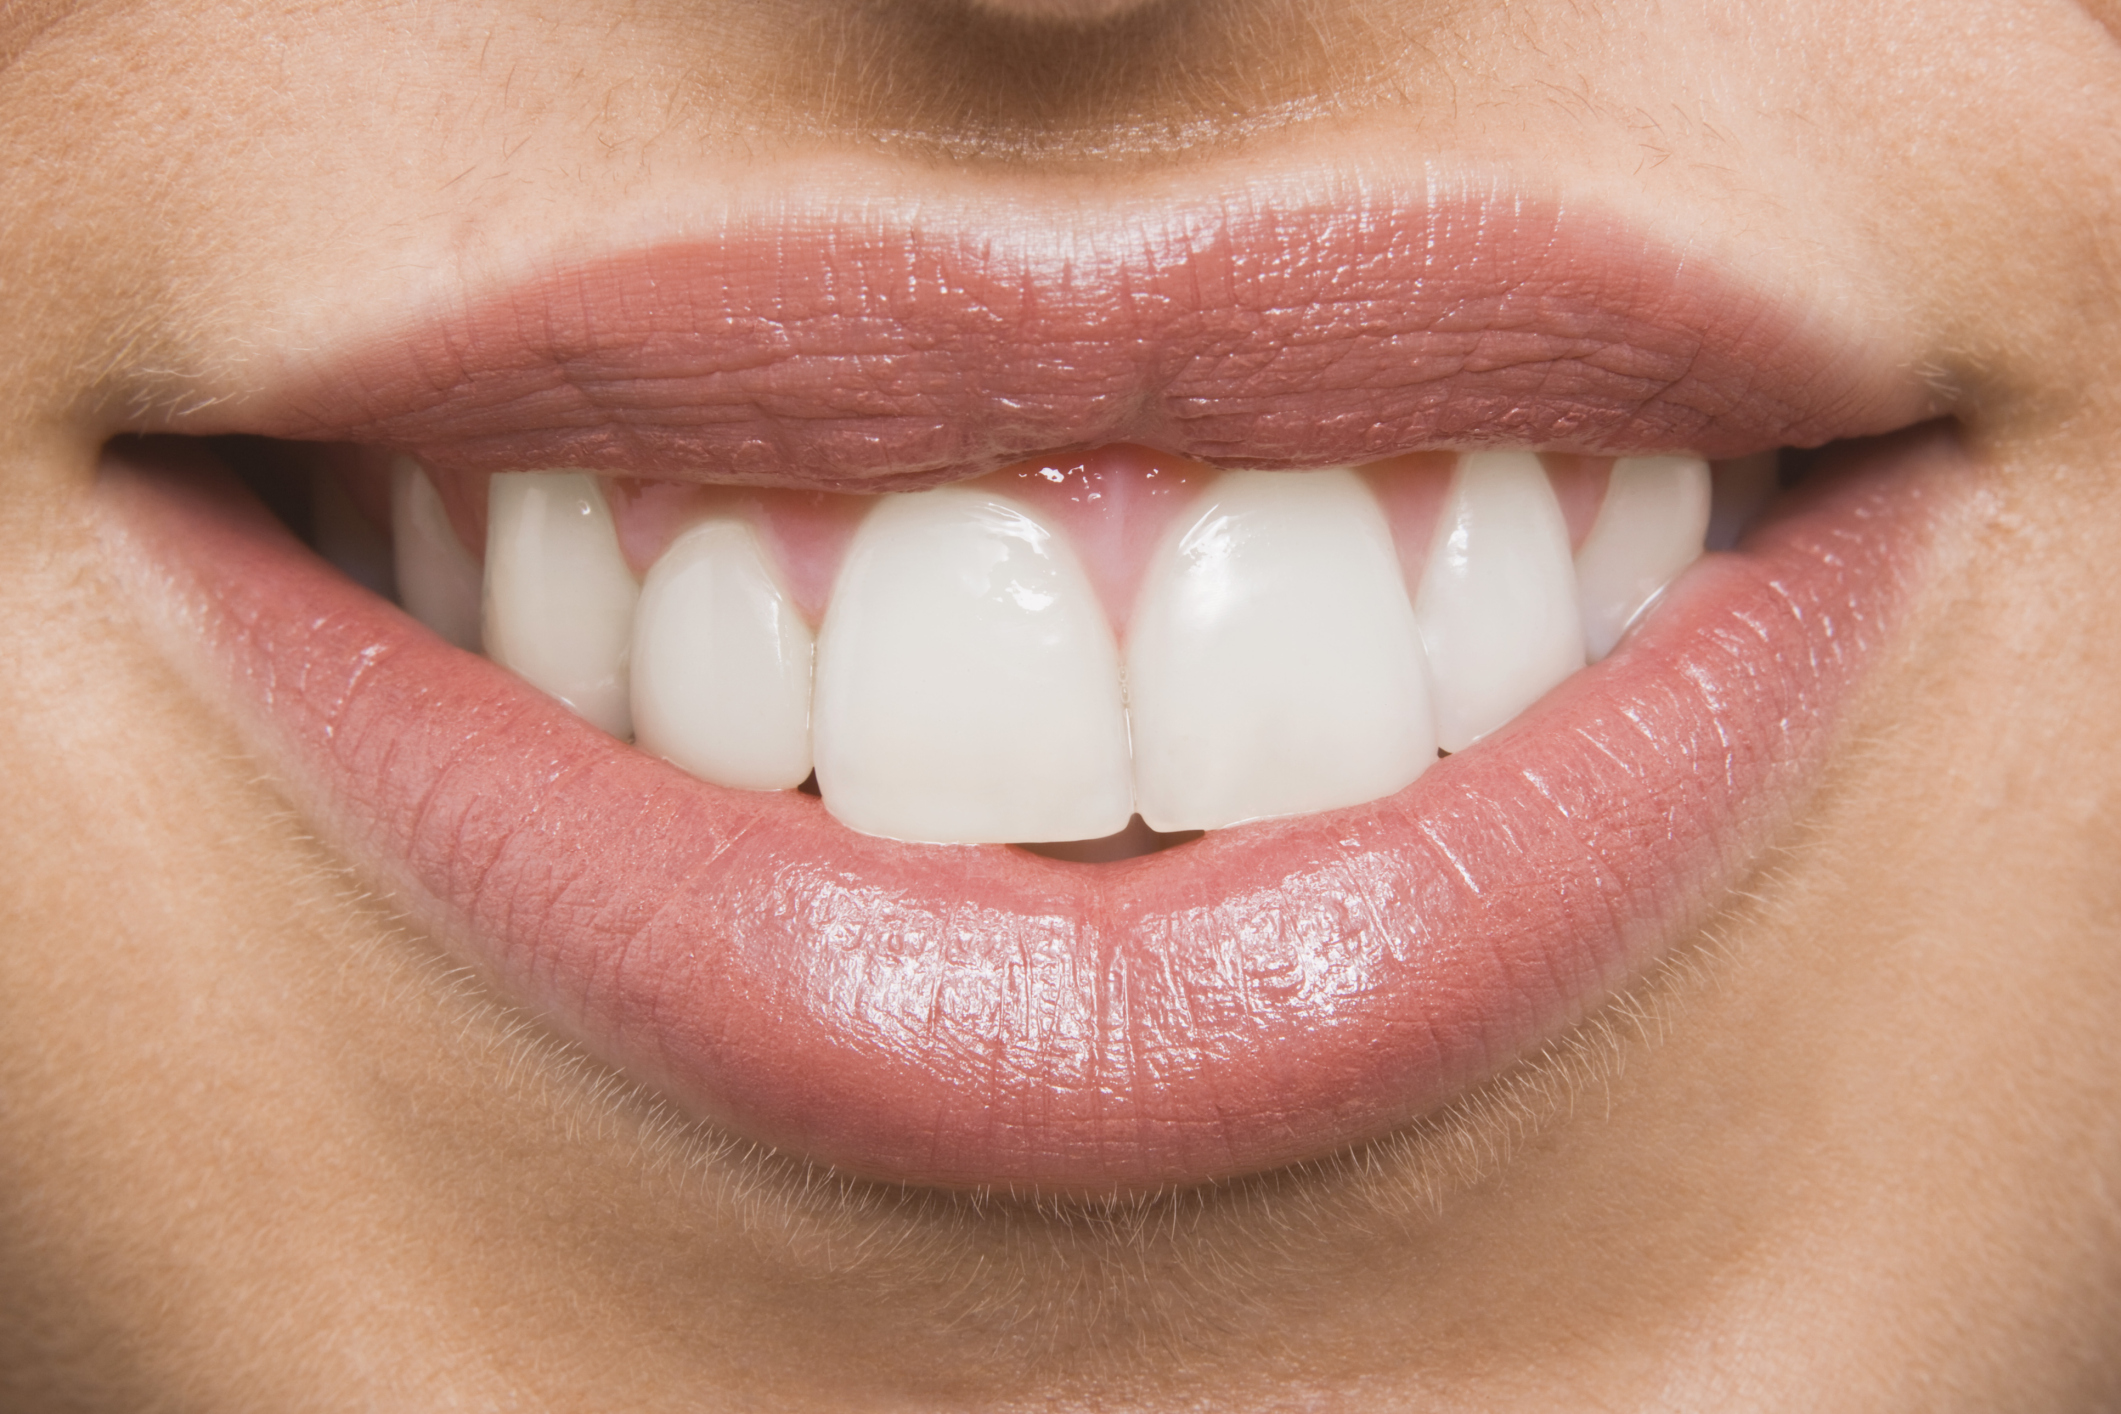 How to Polish Teeth at Home | Our Everyday Life